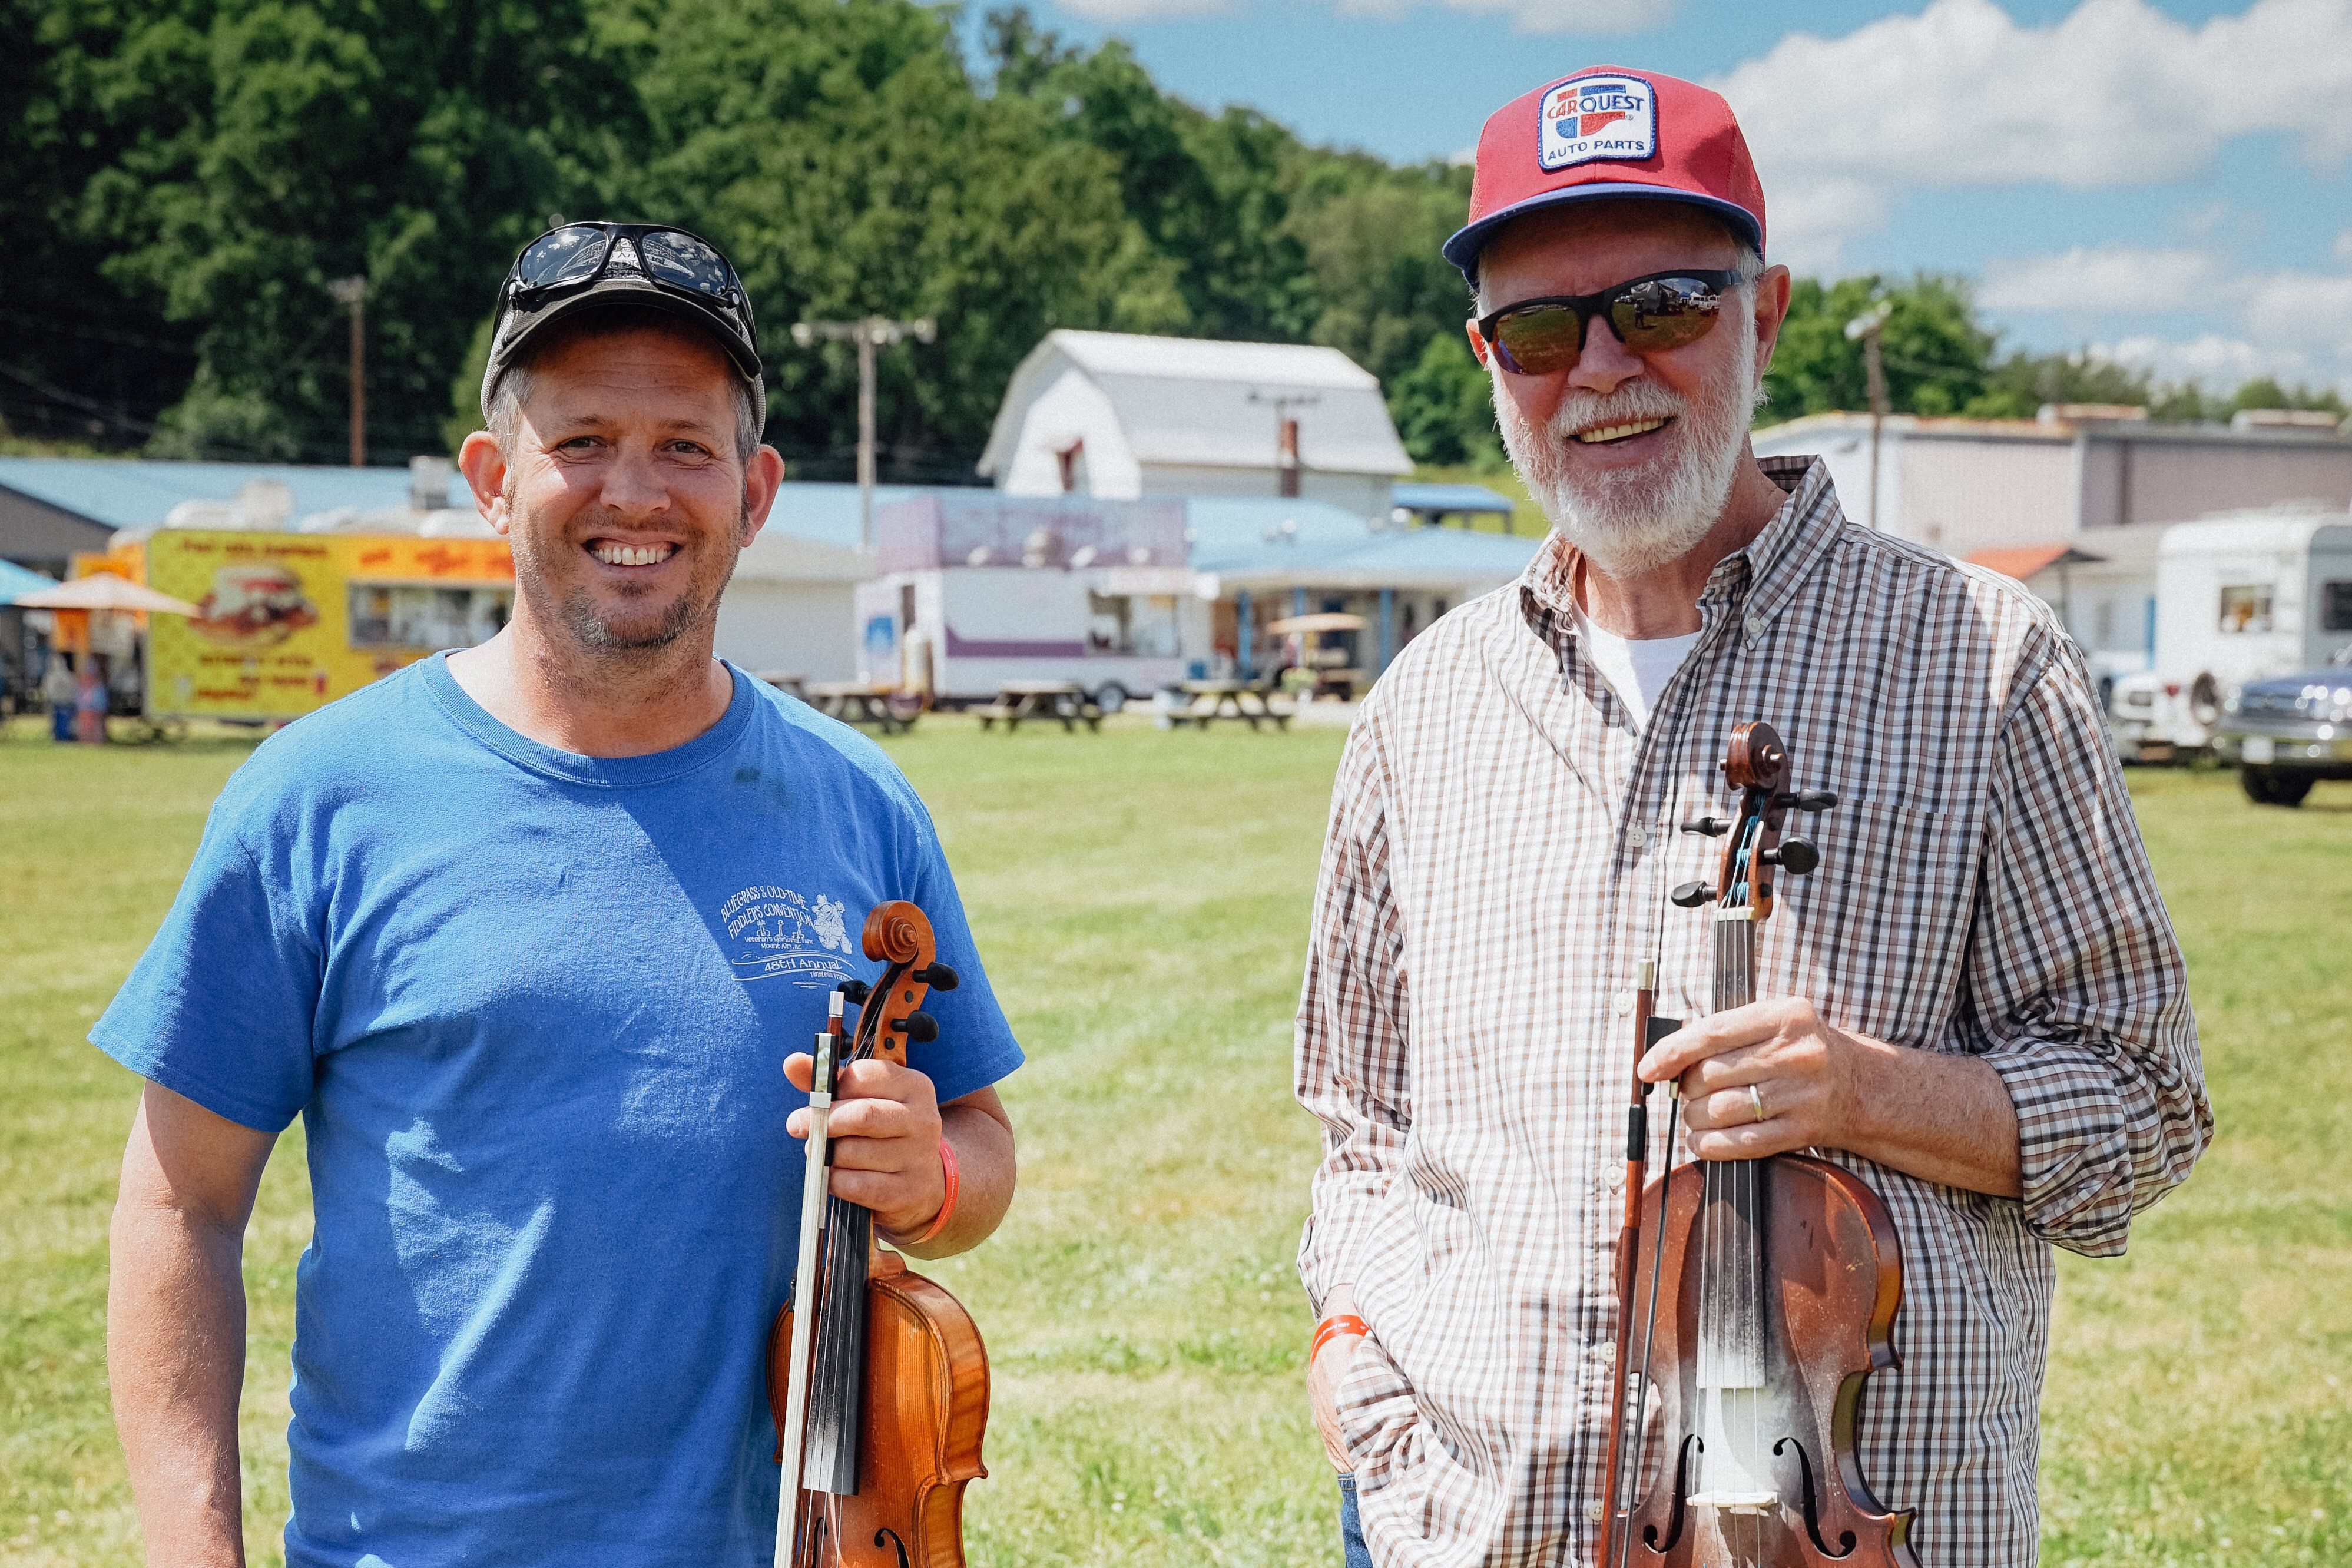 Chad Ritchie, a white man holding a fiddle, stands in on a lawn next to Richard Bowman, an older white man also handing a fiddle.